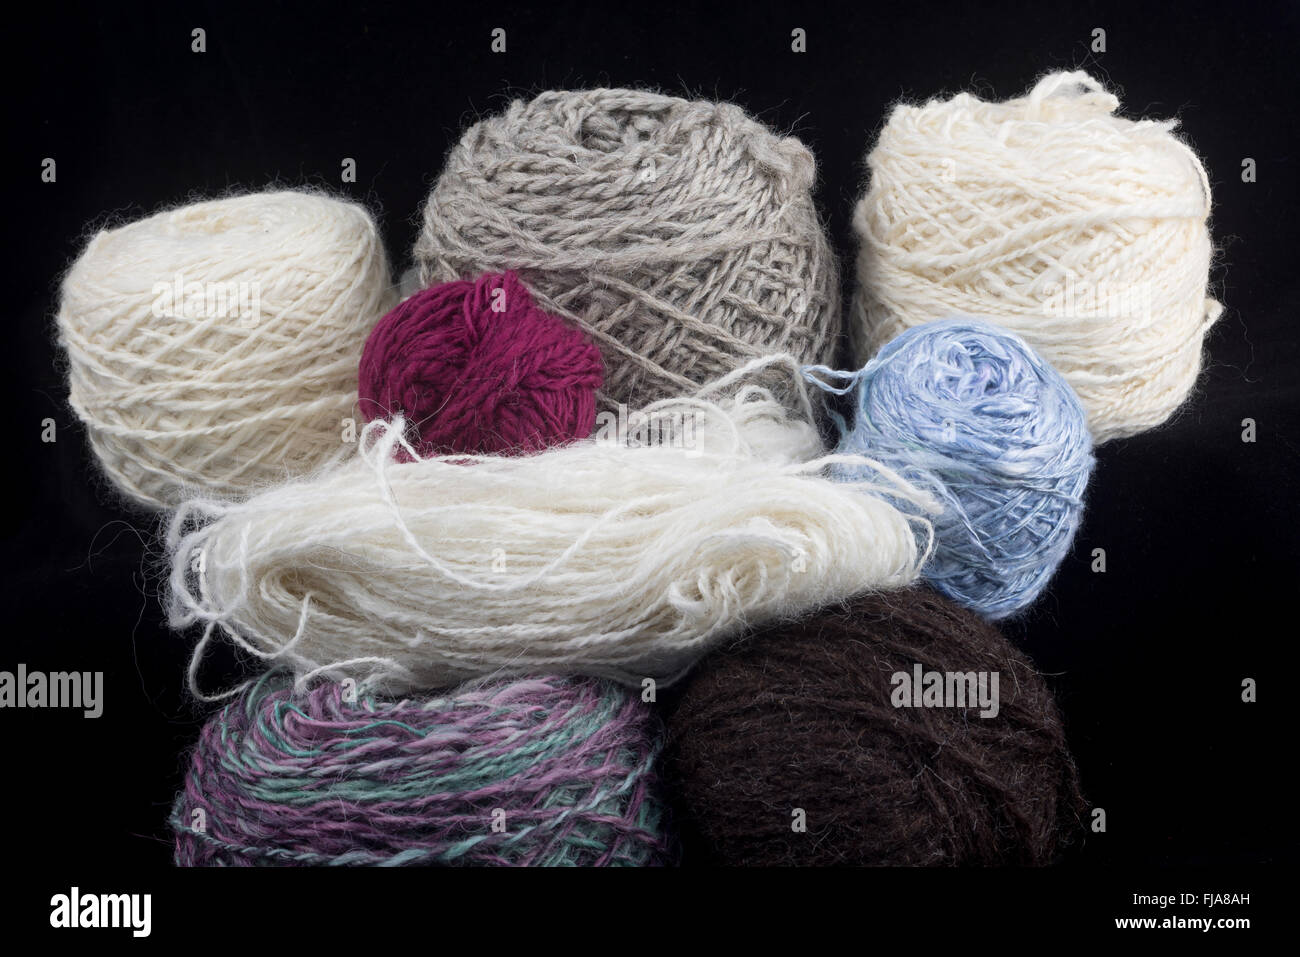 Balls of wool on a black background - Stock Image